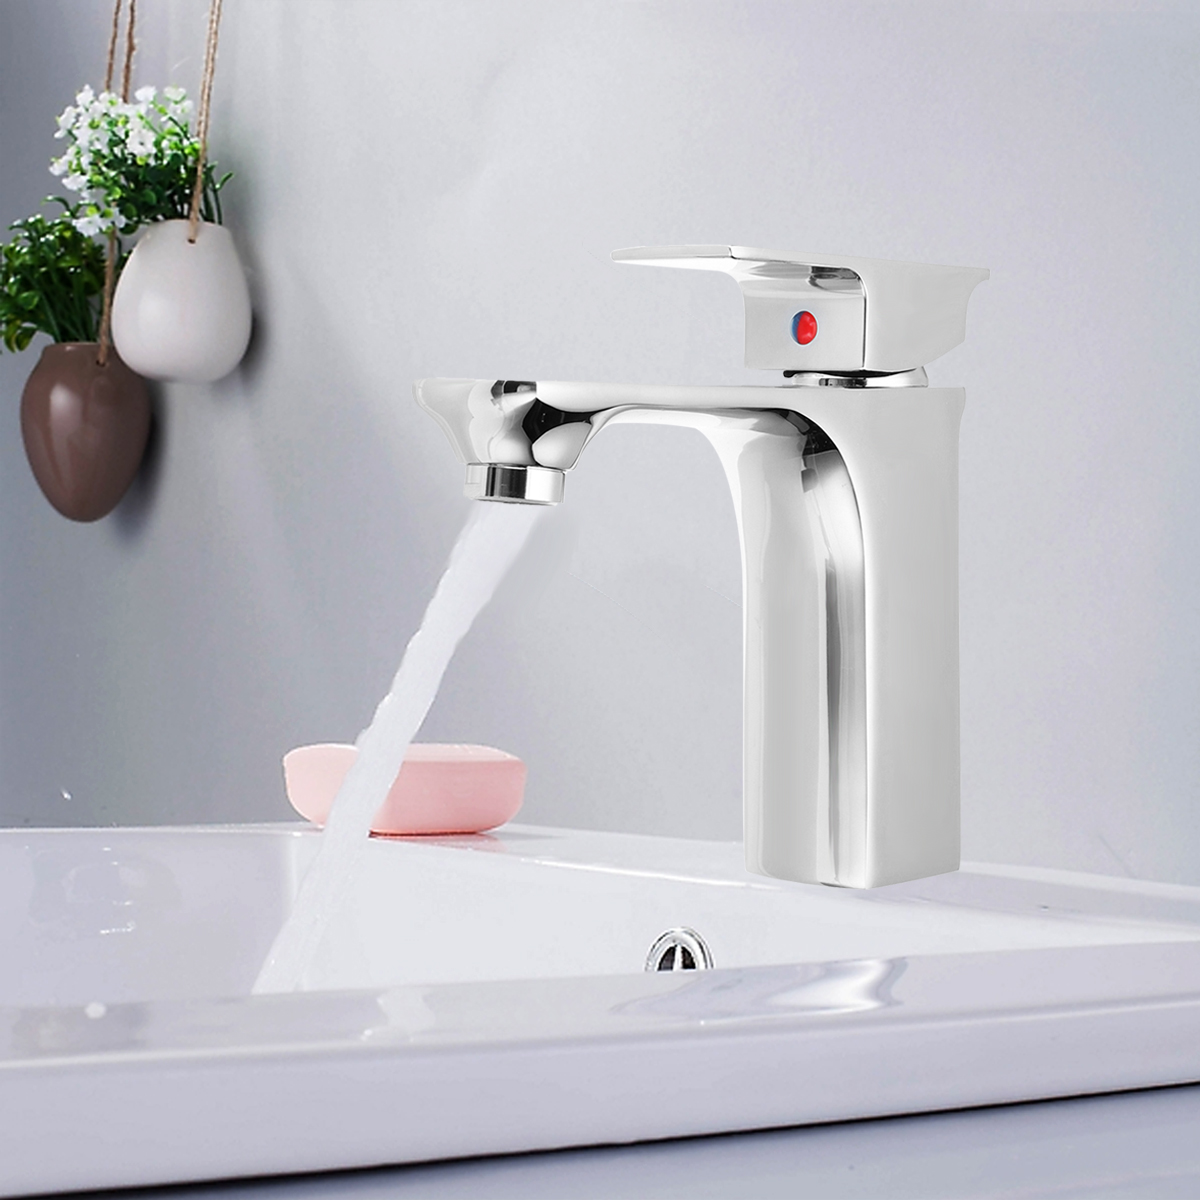 Chrome/Black Brass Bathroom Basin Low Faucet Single Hole/Handle Waterfall Bath Sink Faucet Hot and Cold Water Mixer Tap chrome brass bathroom basin faucet counter top cold and hot water mixer tap sink single handle hole bath room taps